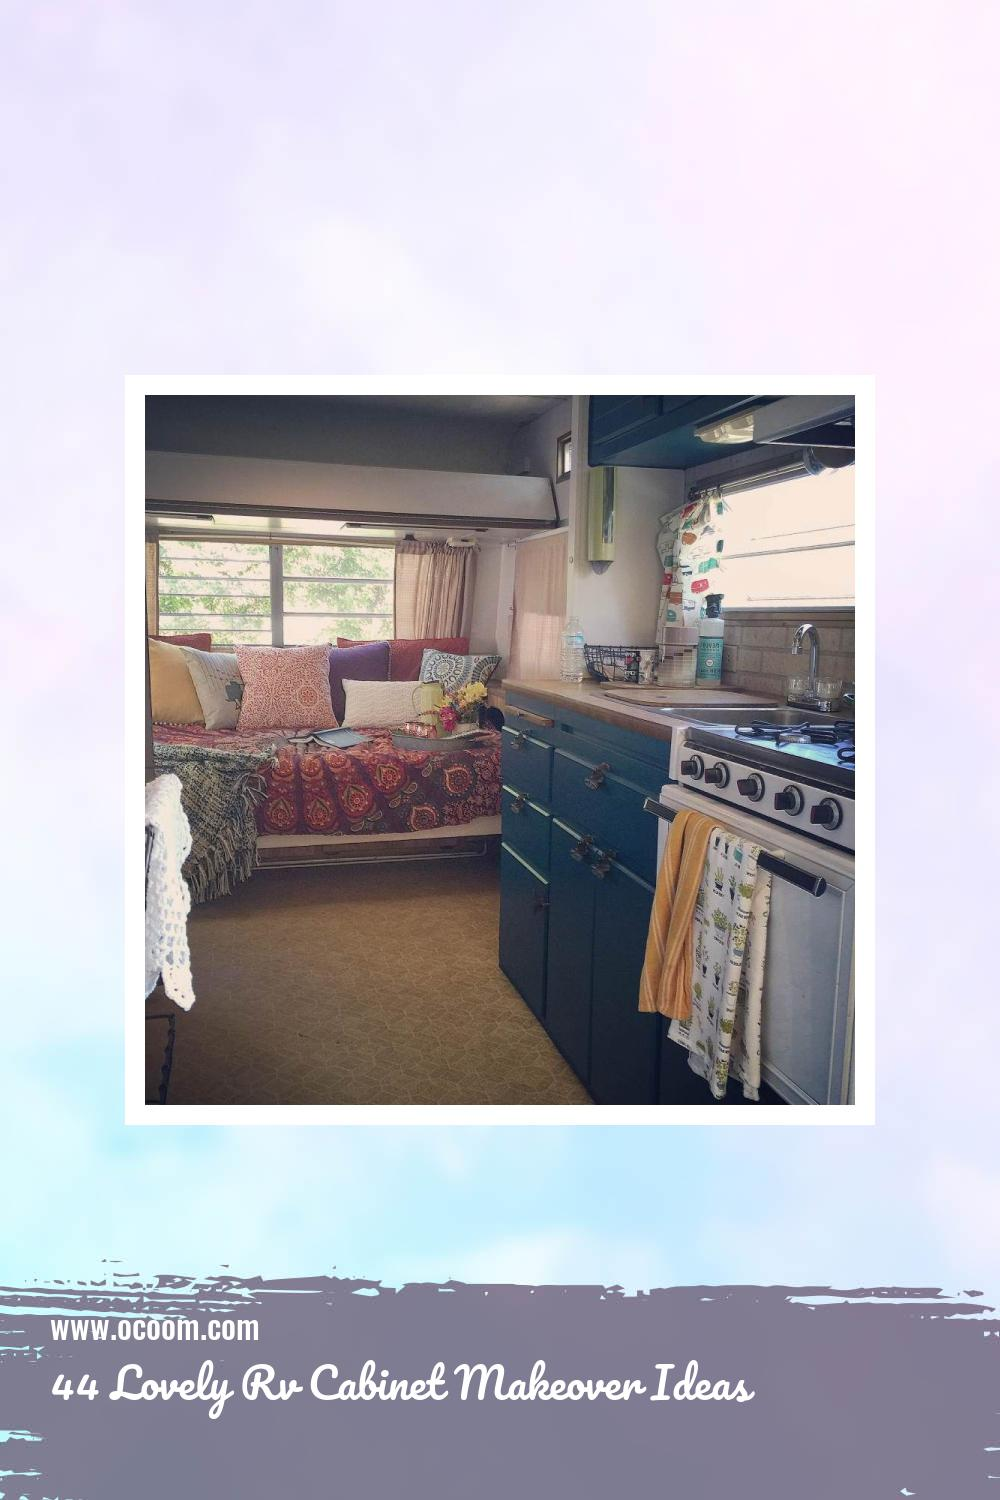 44 Lovely Rv Cabinet Makeover Ideas 19